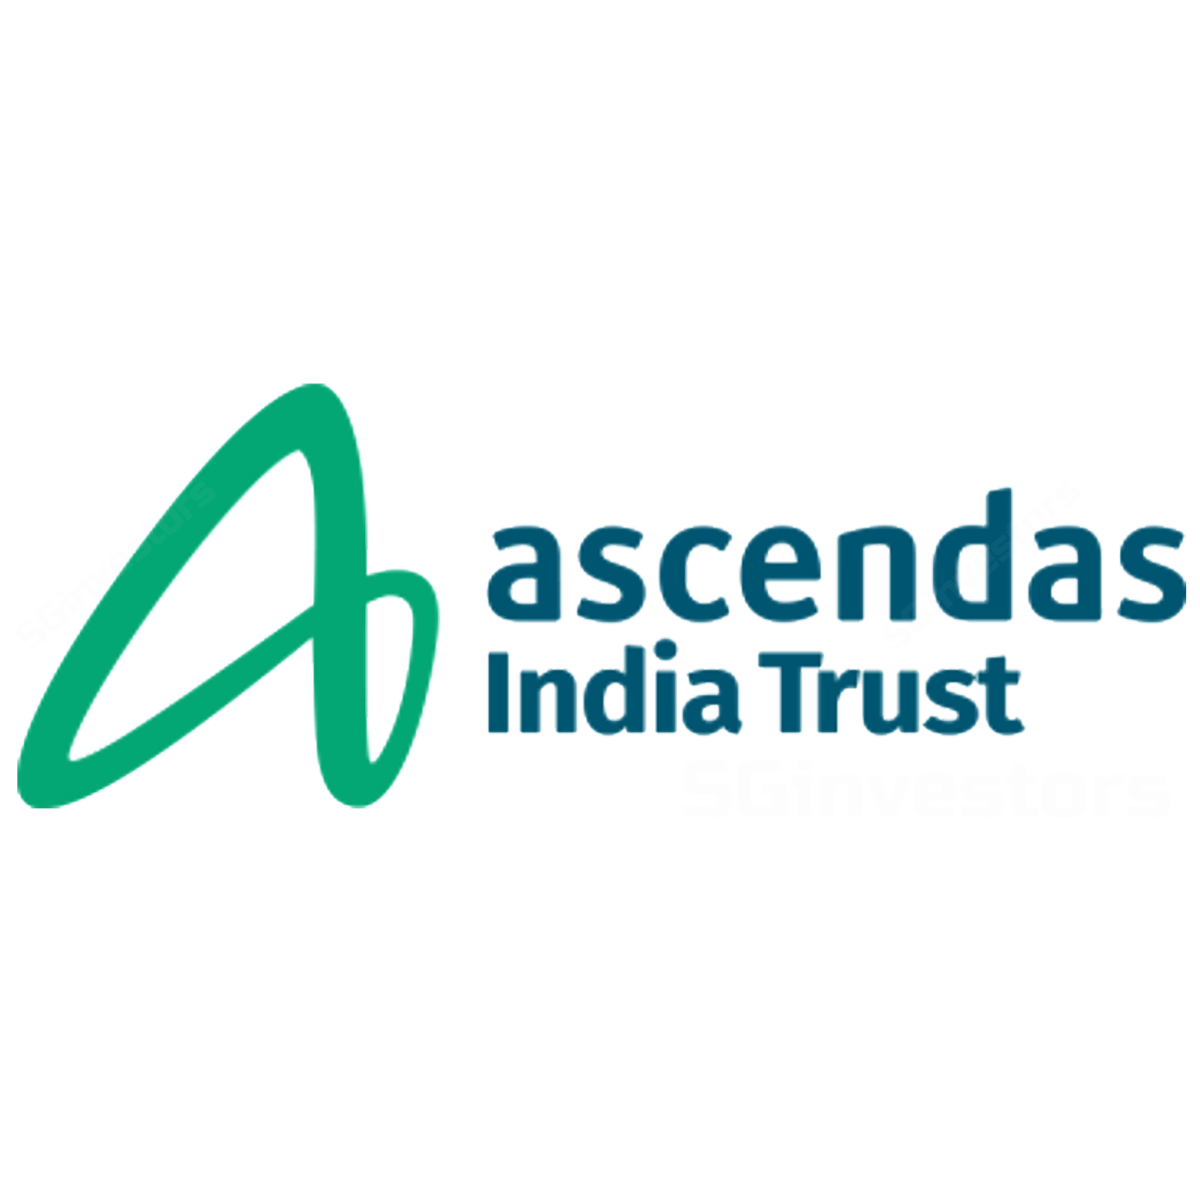 Ascendas India Trust - DBS Vickers 2017-07-25: Taking A Breather For Now